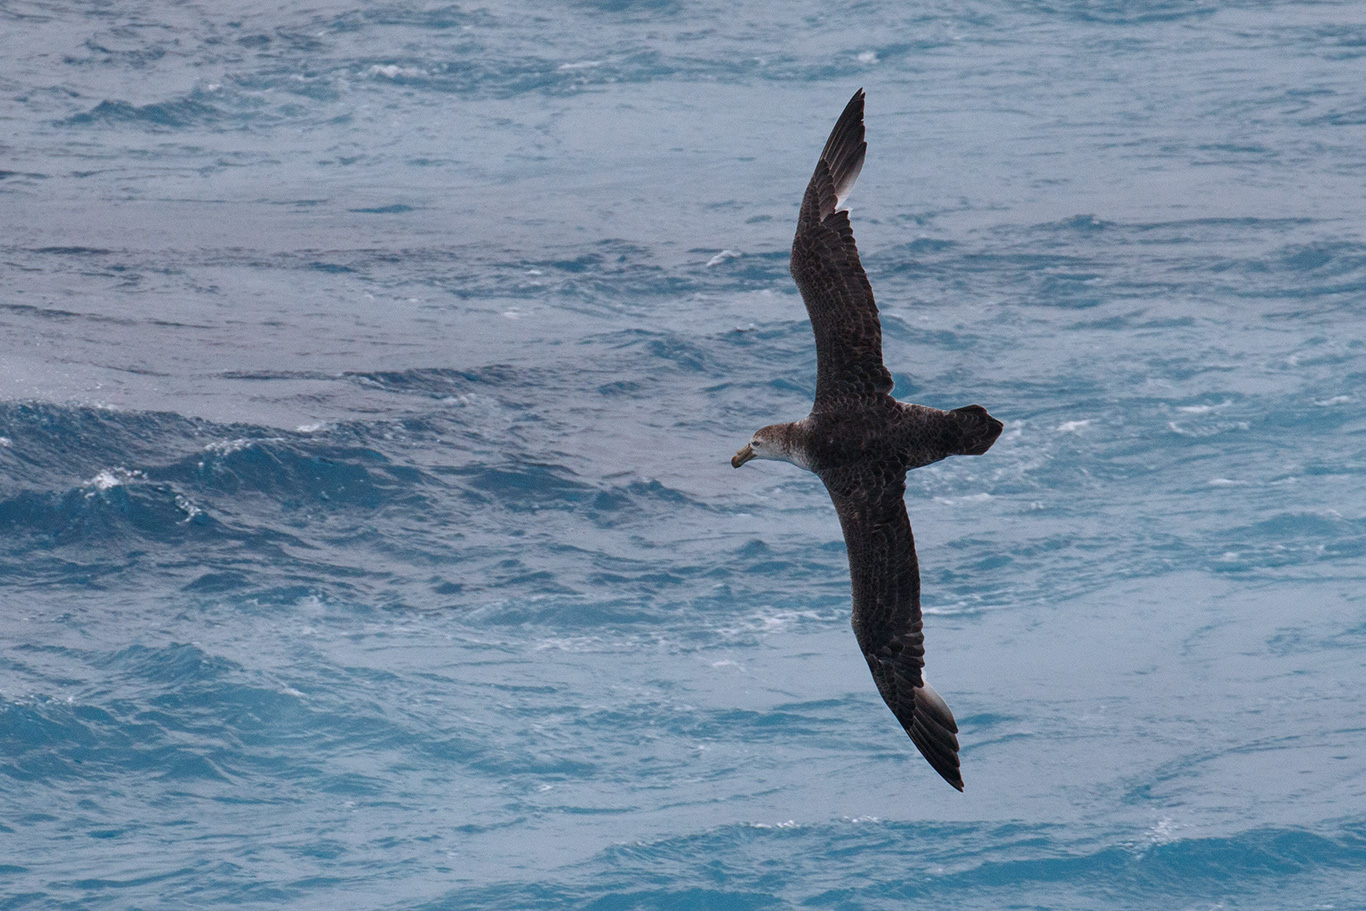 Northern Giant Petrel, At sea, c. 600km east of Argentina, north of The Falklands, South Atlantic Ocean.